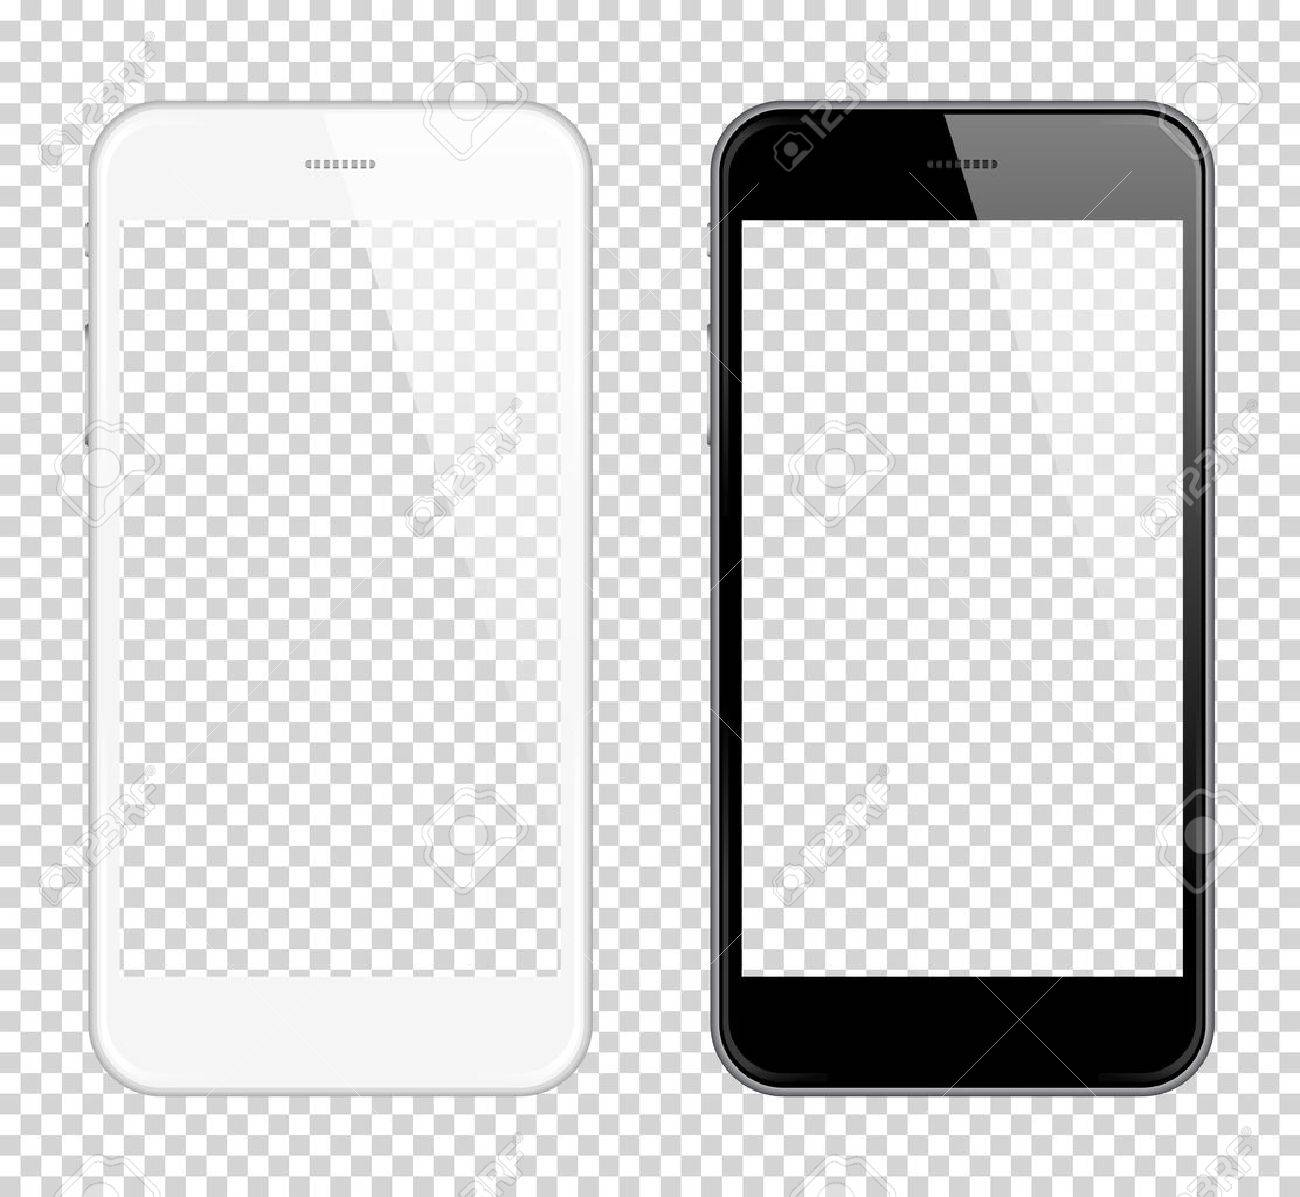 Realistic Smart Phone Vector Mock Up Fully Re Size Able Easy Royalty Free Cliparts Vectors And Stock Illustration Image 64062861